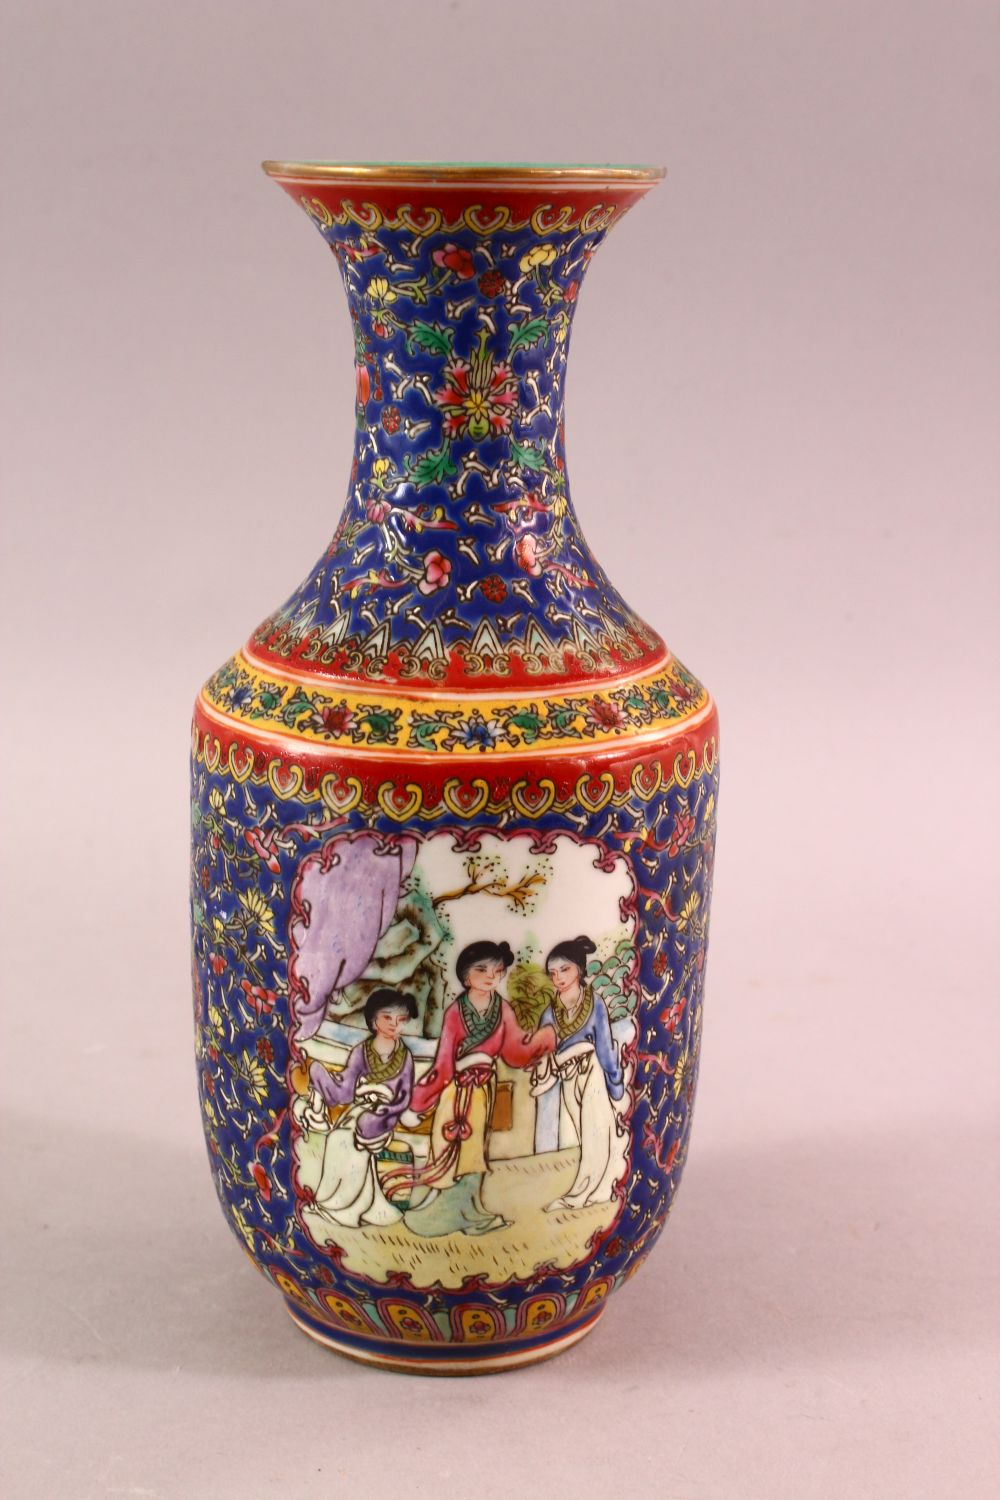 A CHINESE FAMILLE ROSE PORCELAIN VASE, with panels of figures and floral decoration, the base with a - Image 3 of 6